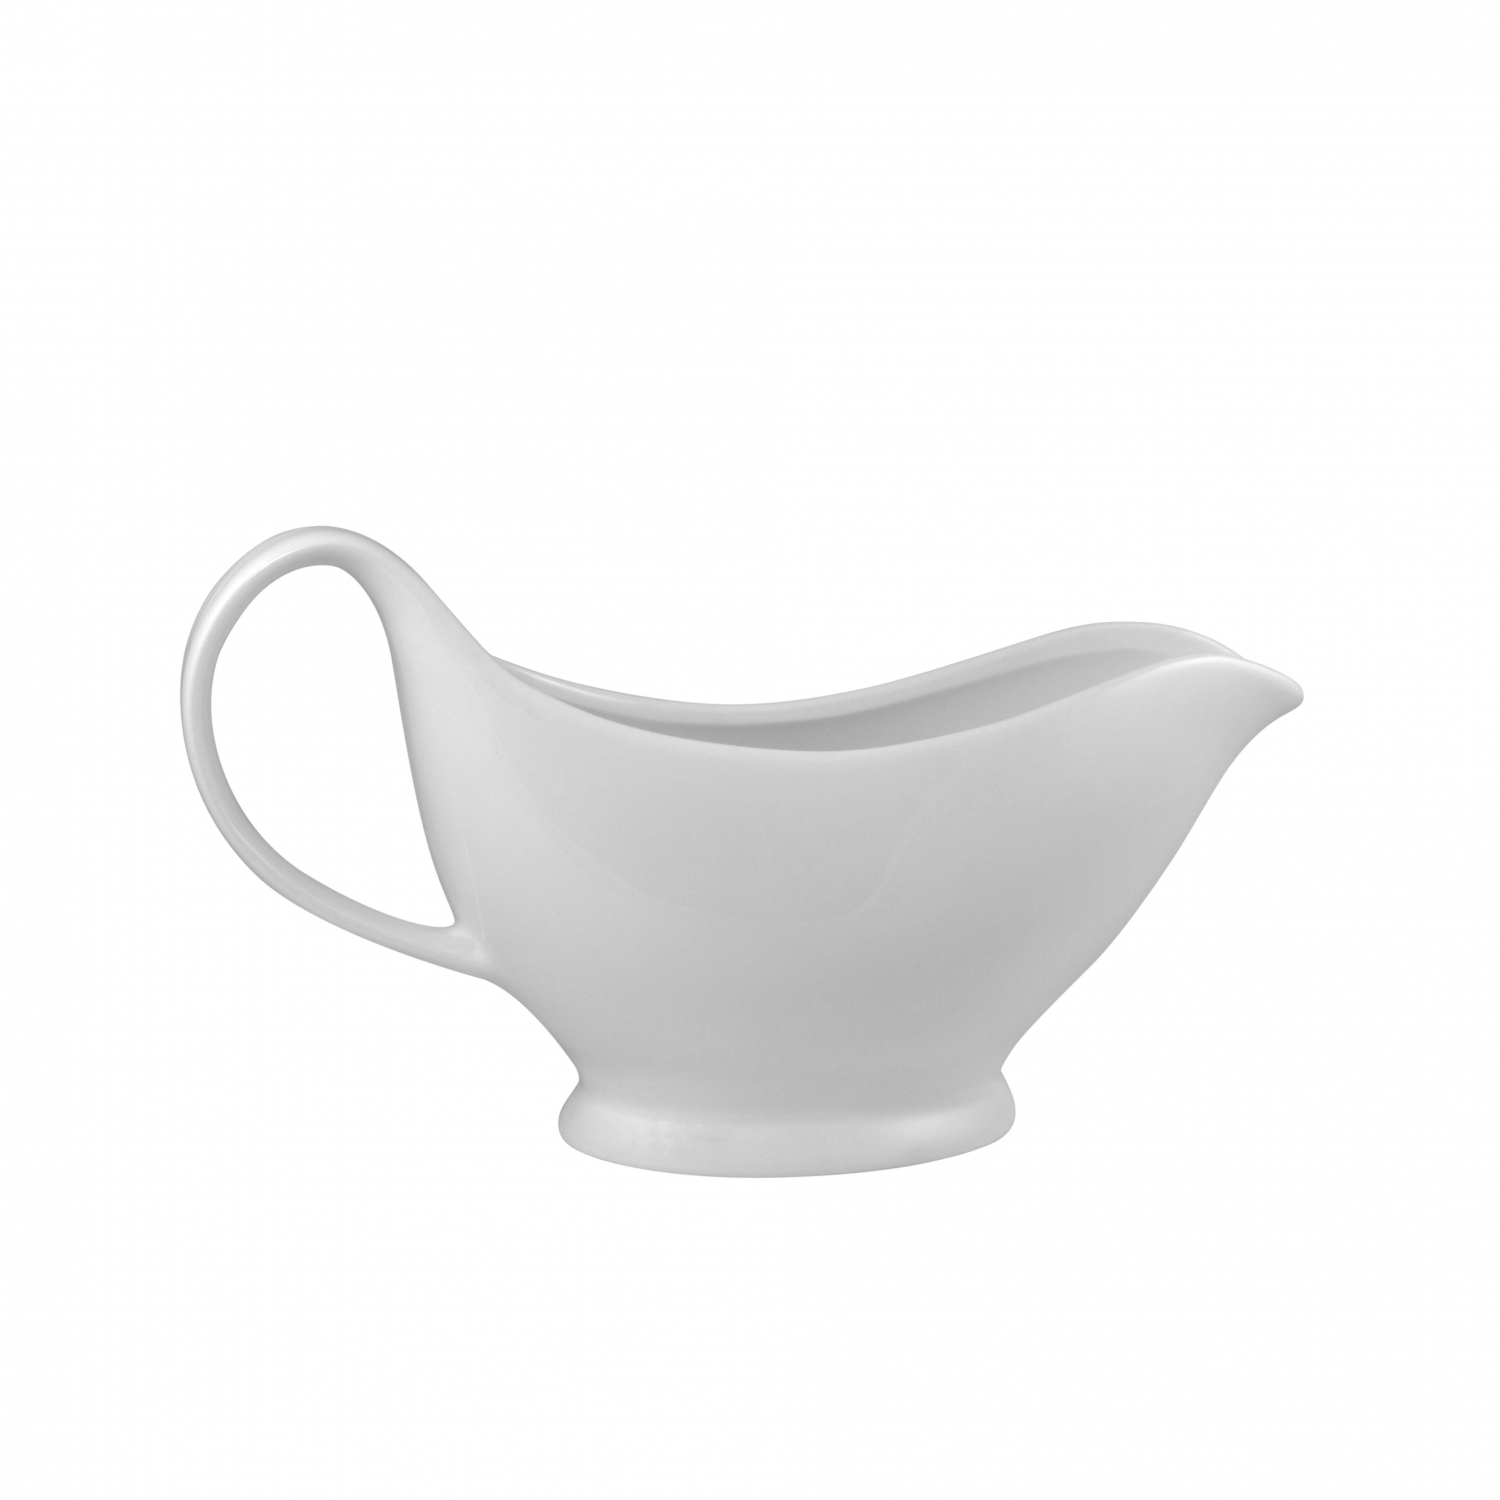 10 Strawberry Street WTR-25 Whittier Gravy Boat 16 oz.